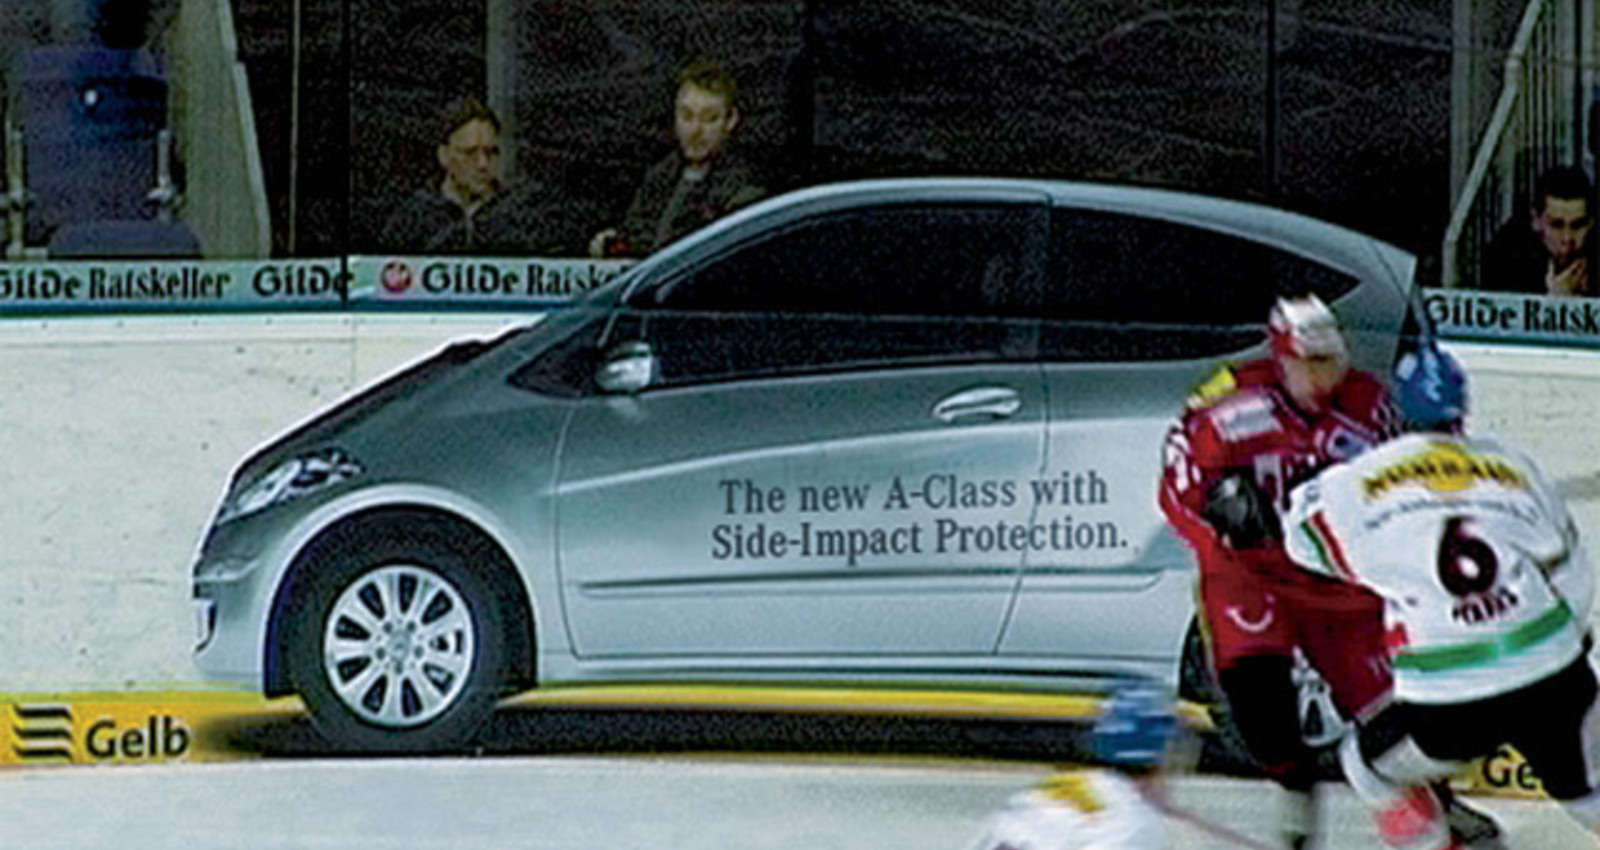 Side-Impact Protection